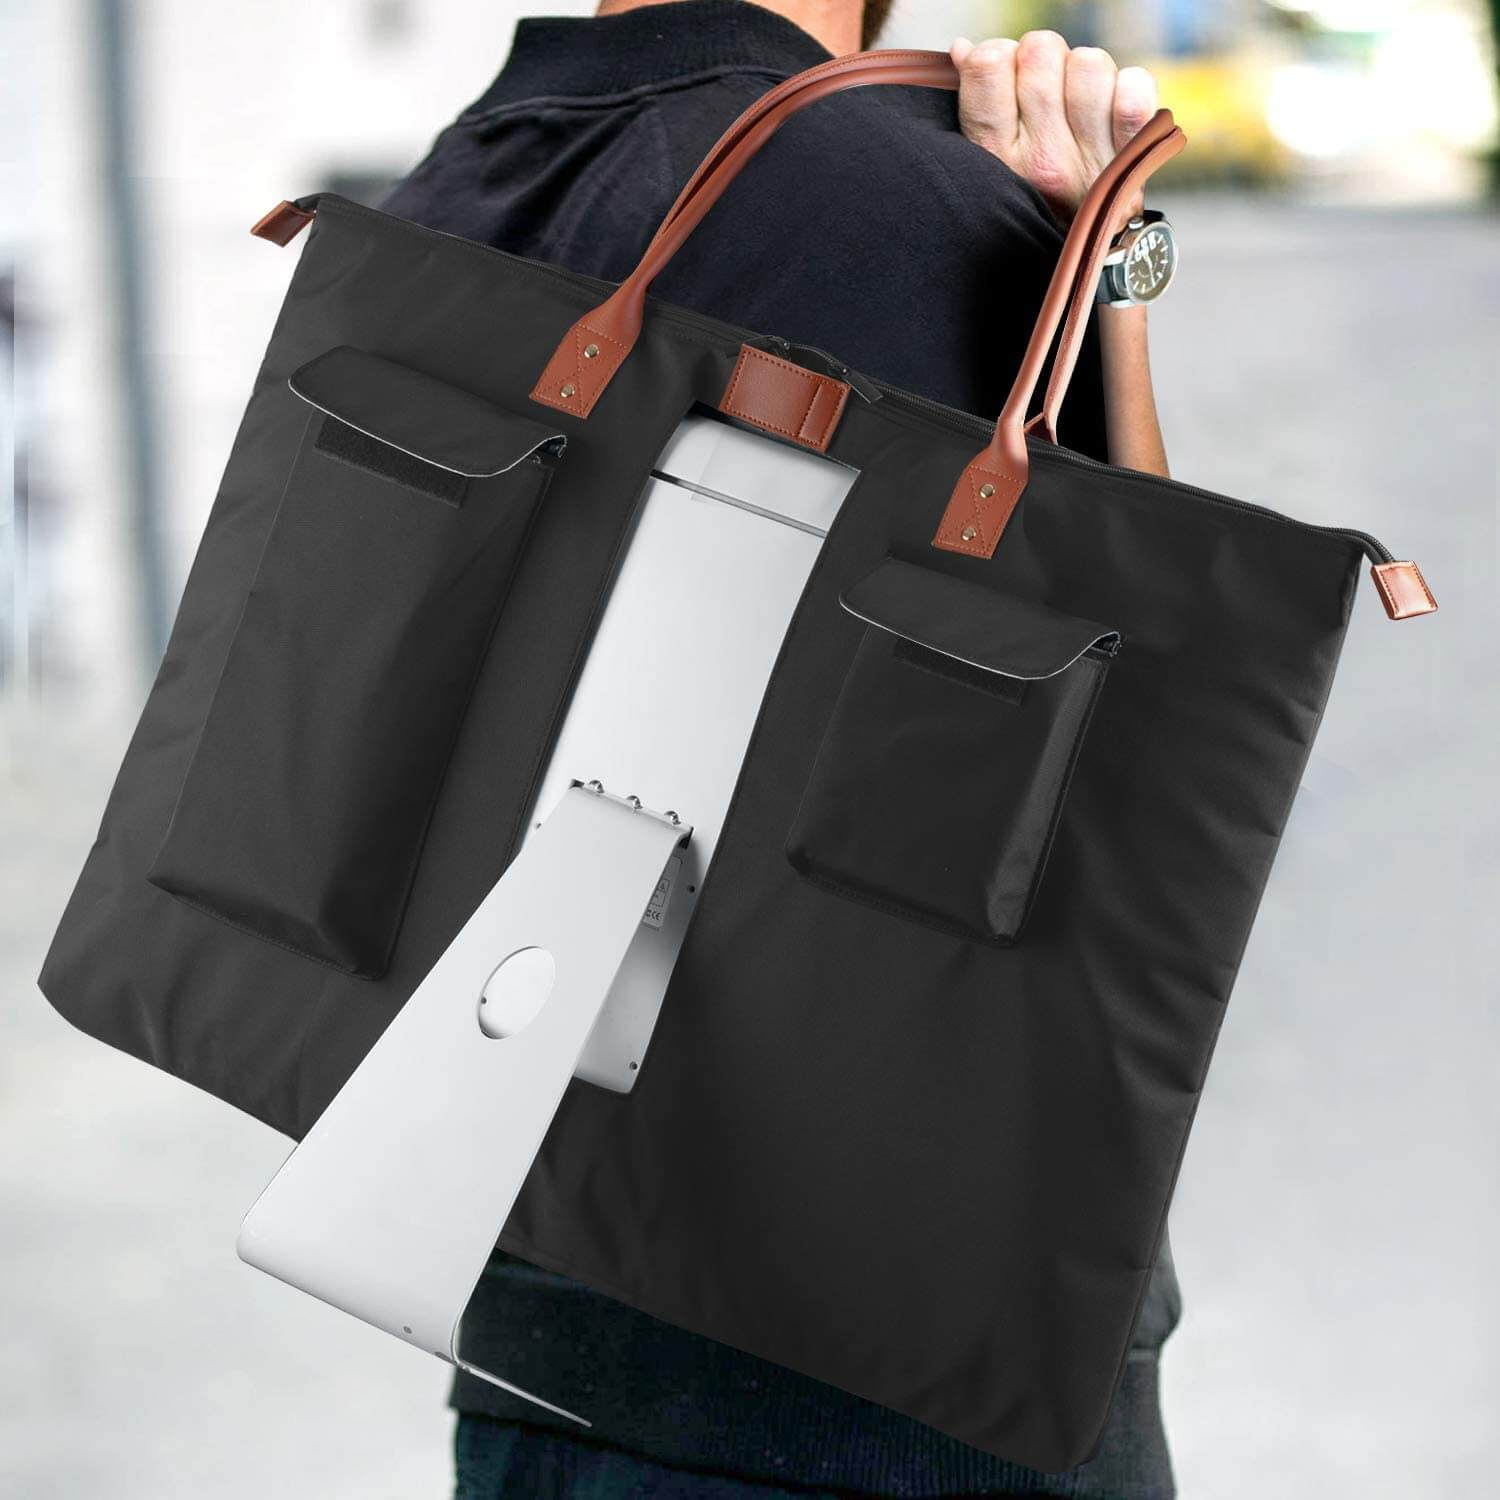 Carrying Bag For iMac Desktop